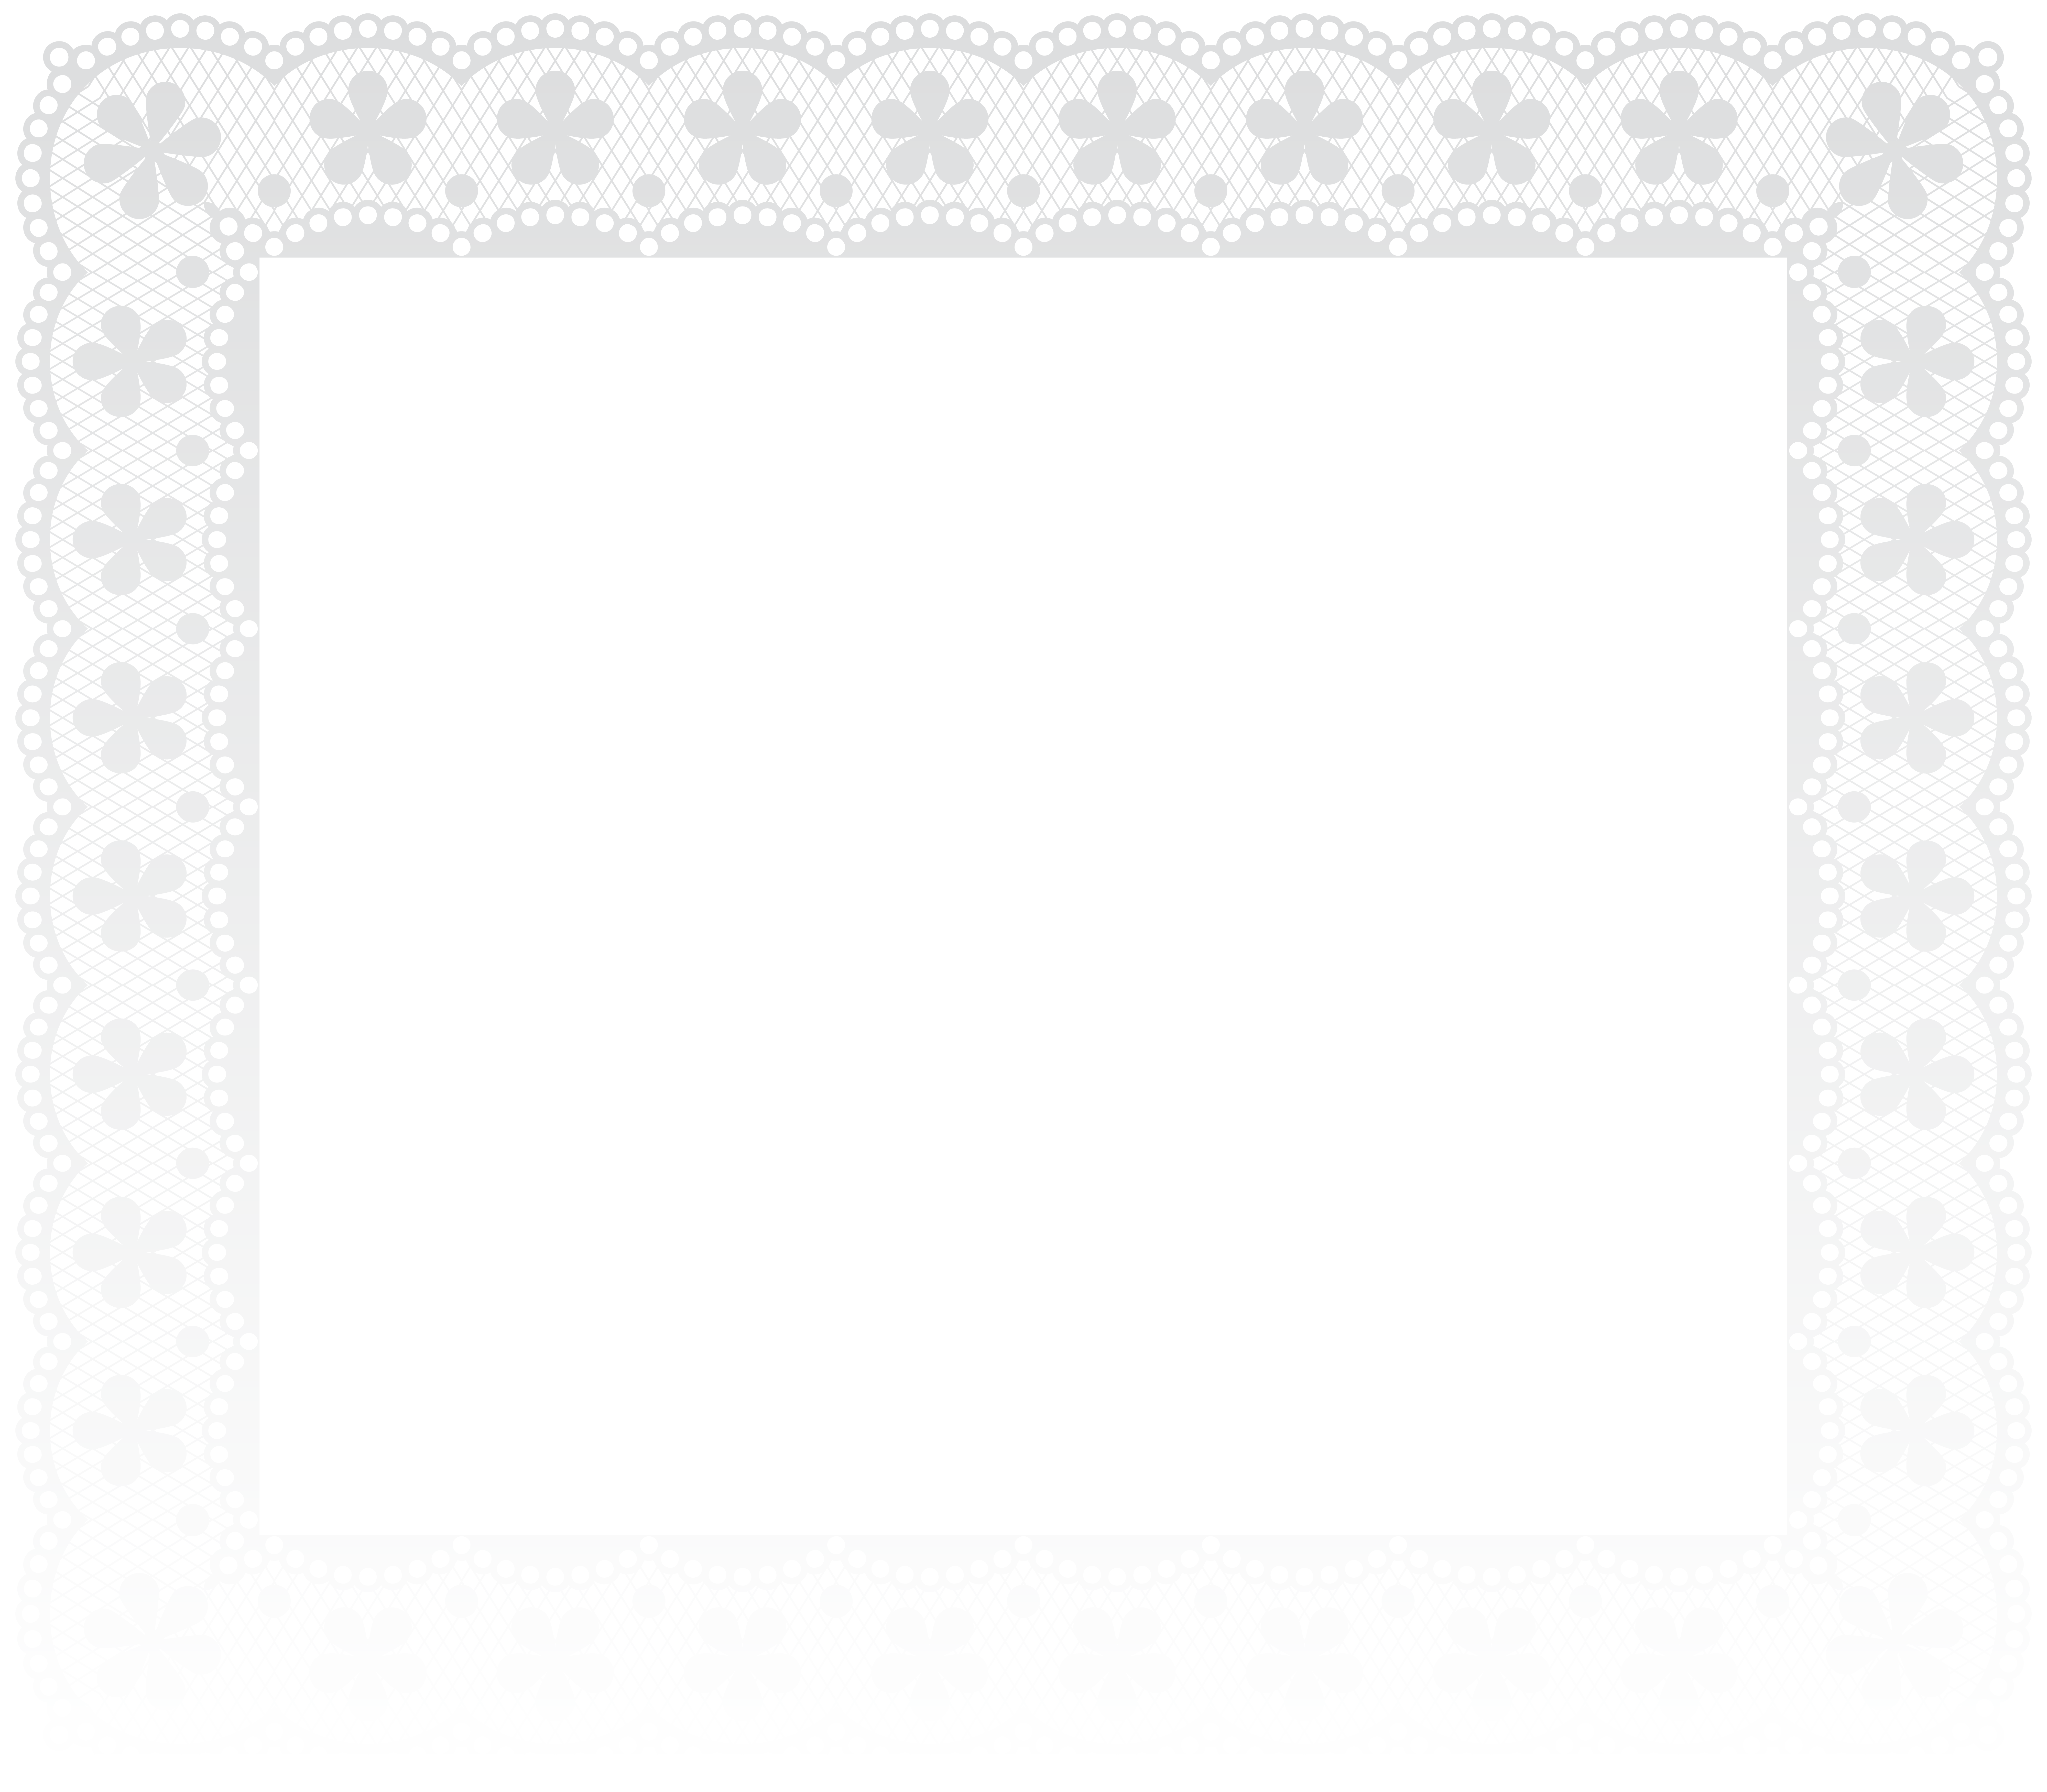 White lace frame png. Border clip art image